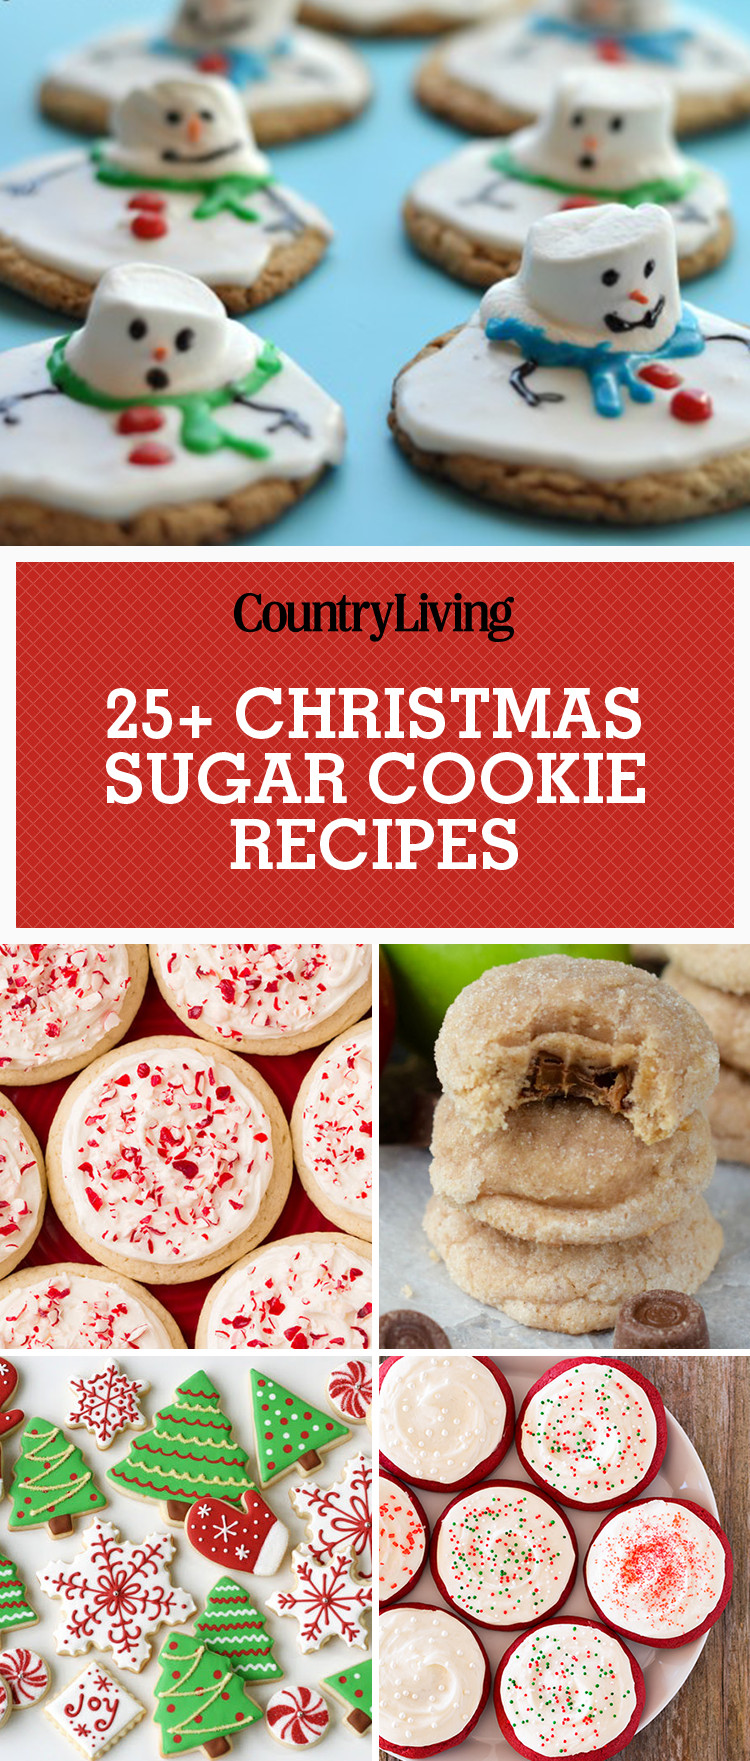 Sugar Cookies Recipe Christmas  25 Easy Christmas Sugar Cookies Recipes & Decorating